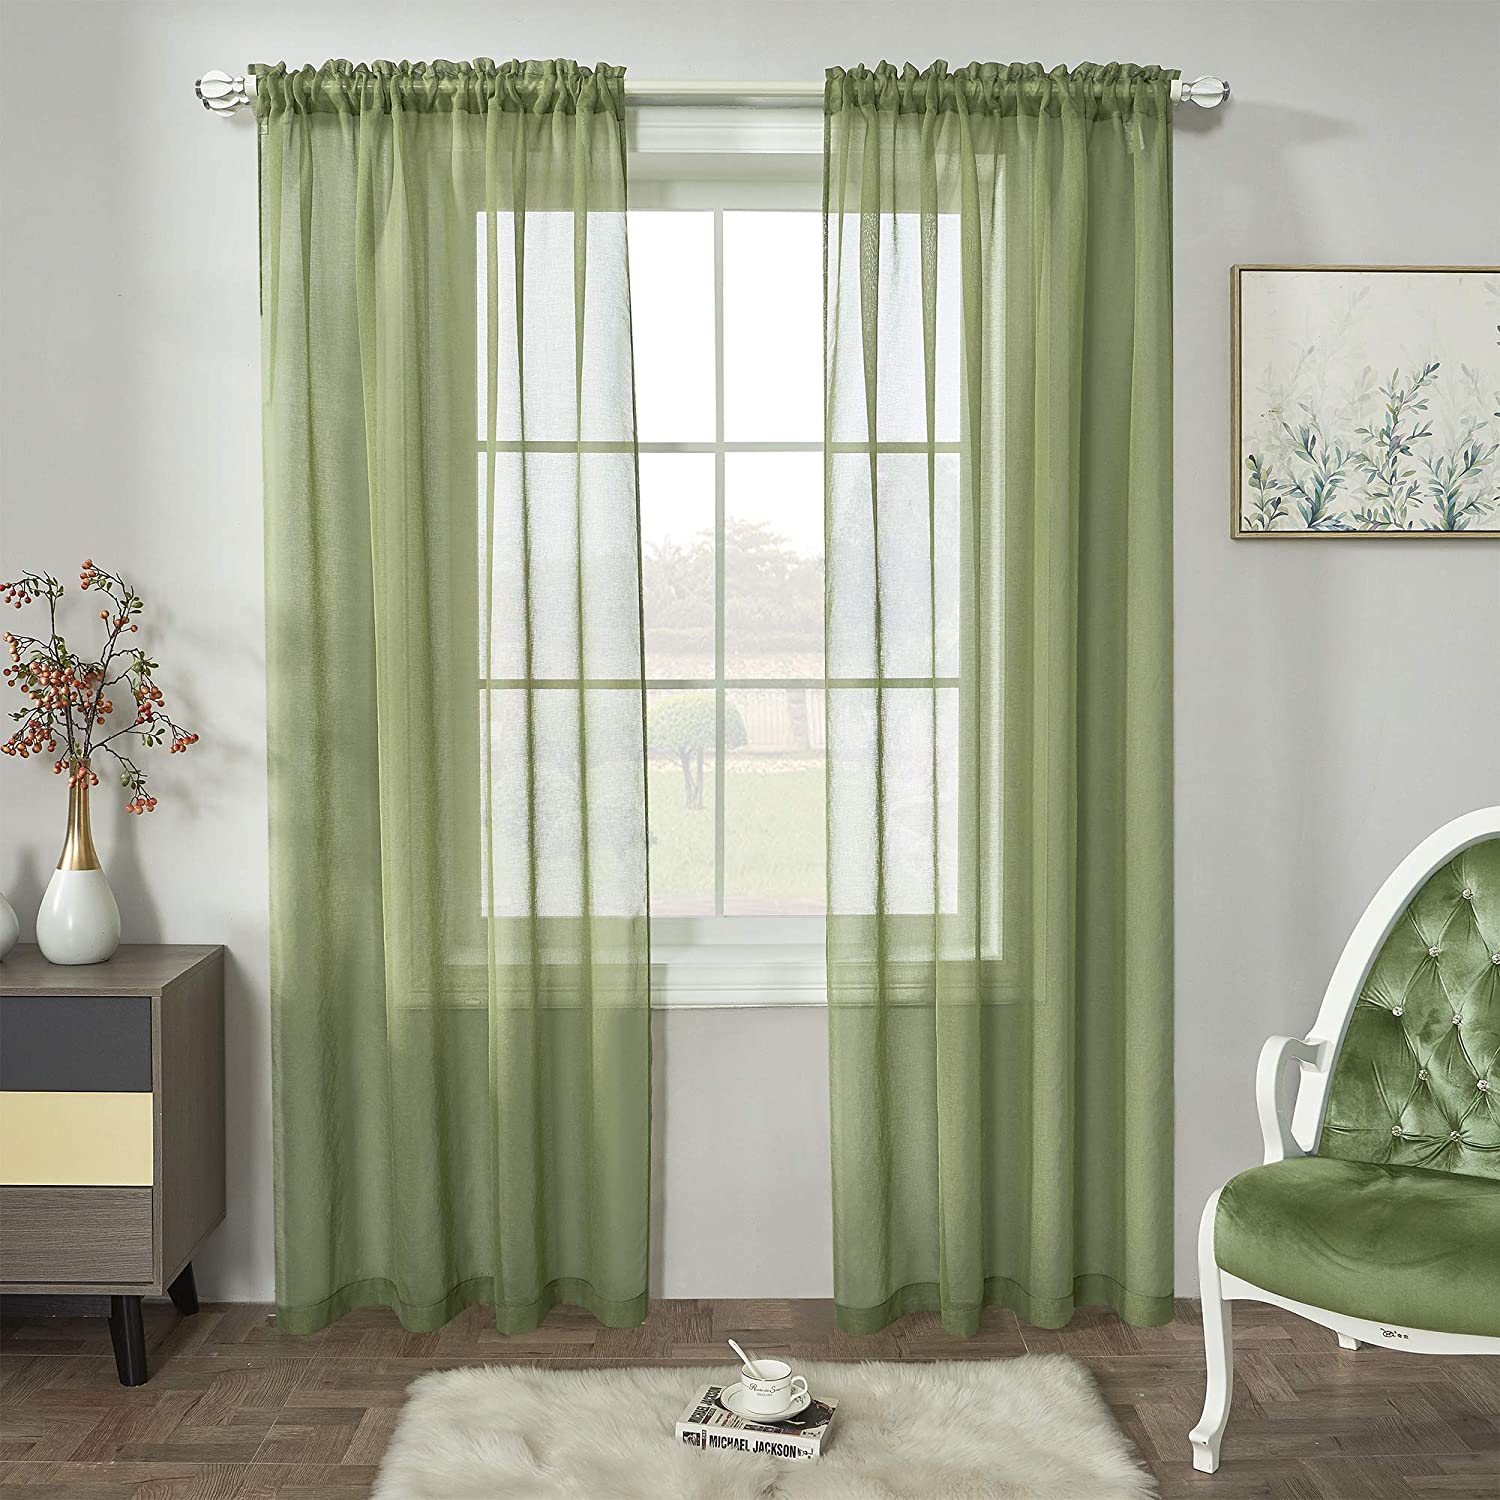 Sage Green Semi Max 54% Luxury goods OFF Sheer Curtains Window Linen P Faux Curtain